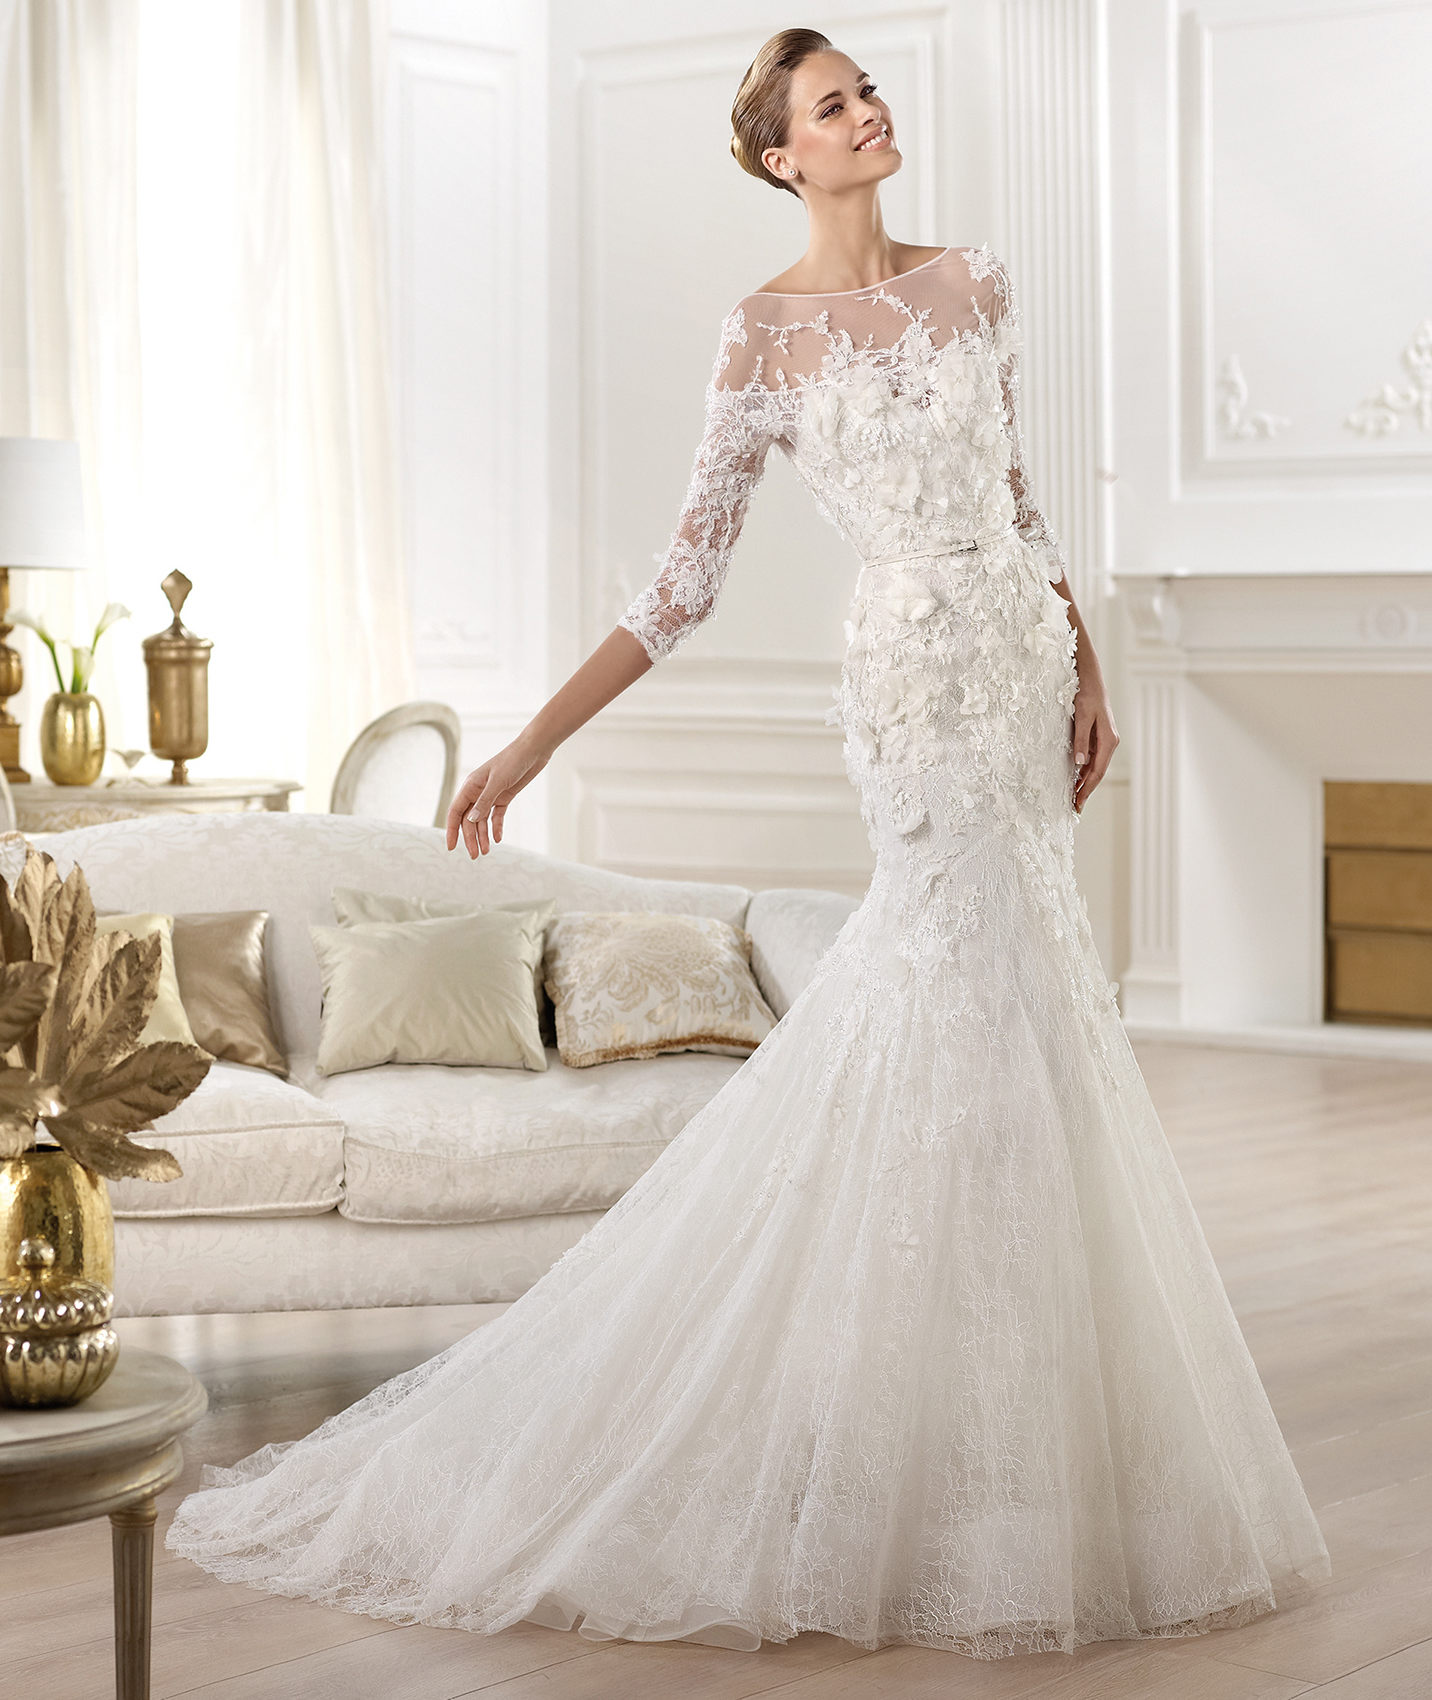 Fit & Flare Silhouettes - Elie Saab for Pronovias CIGNUS